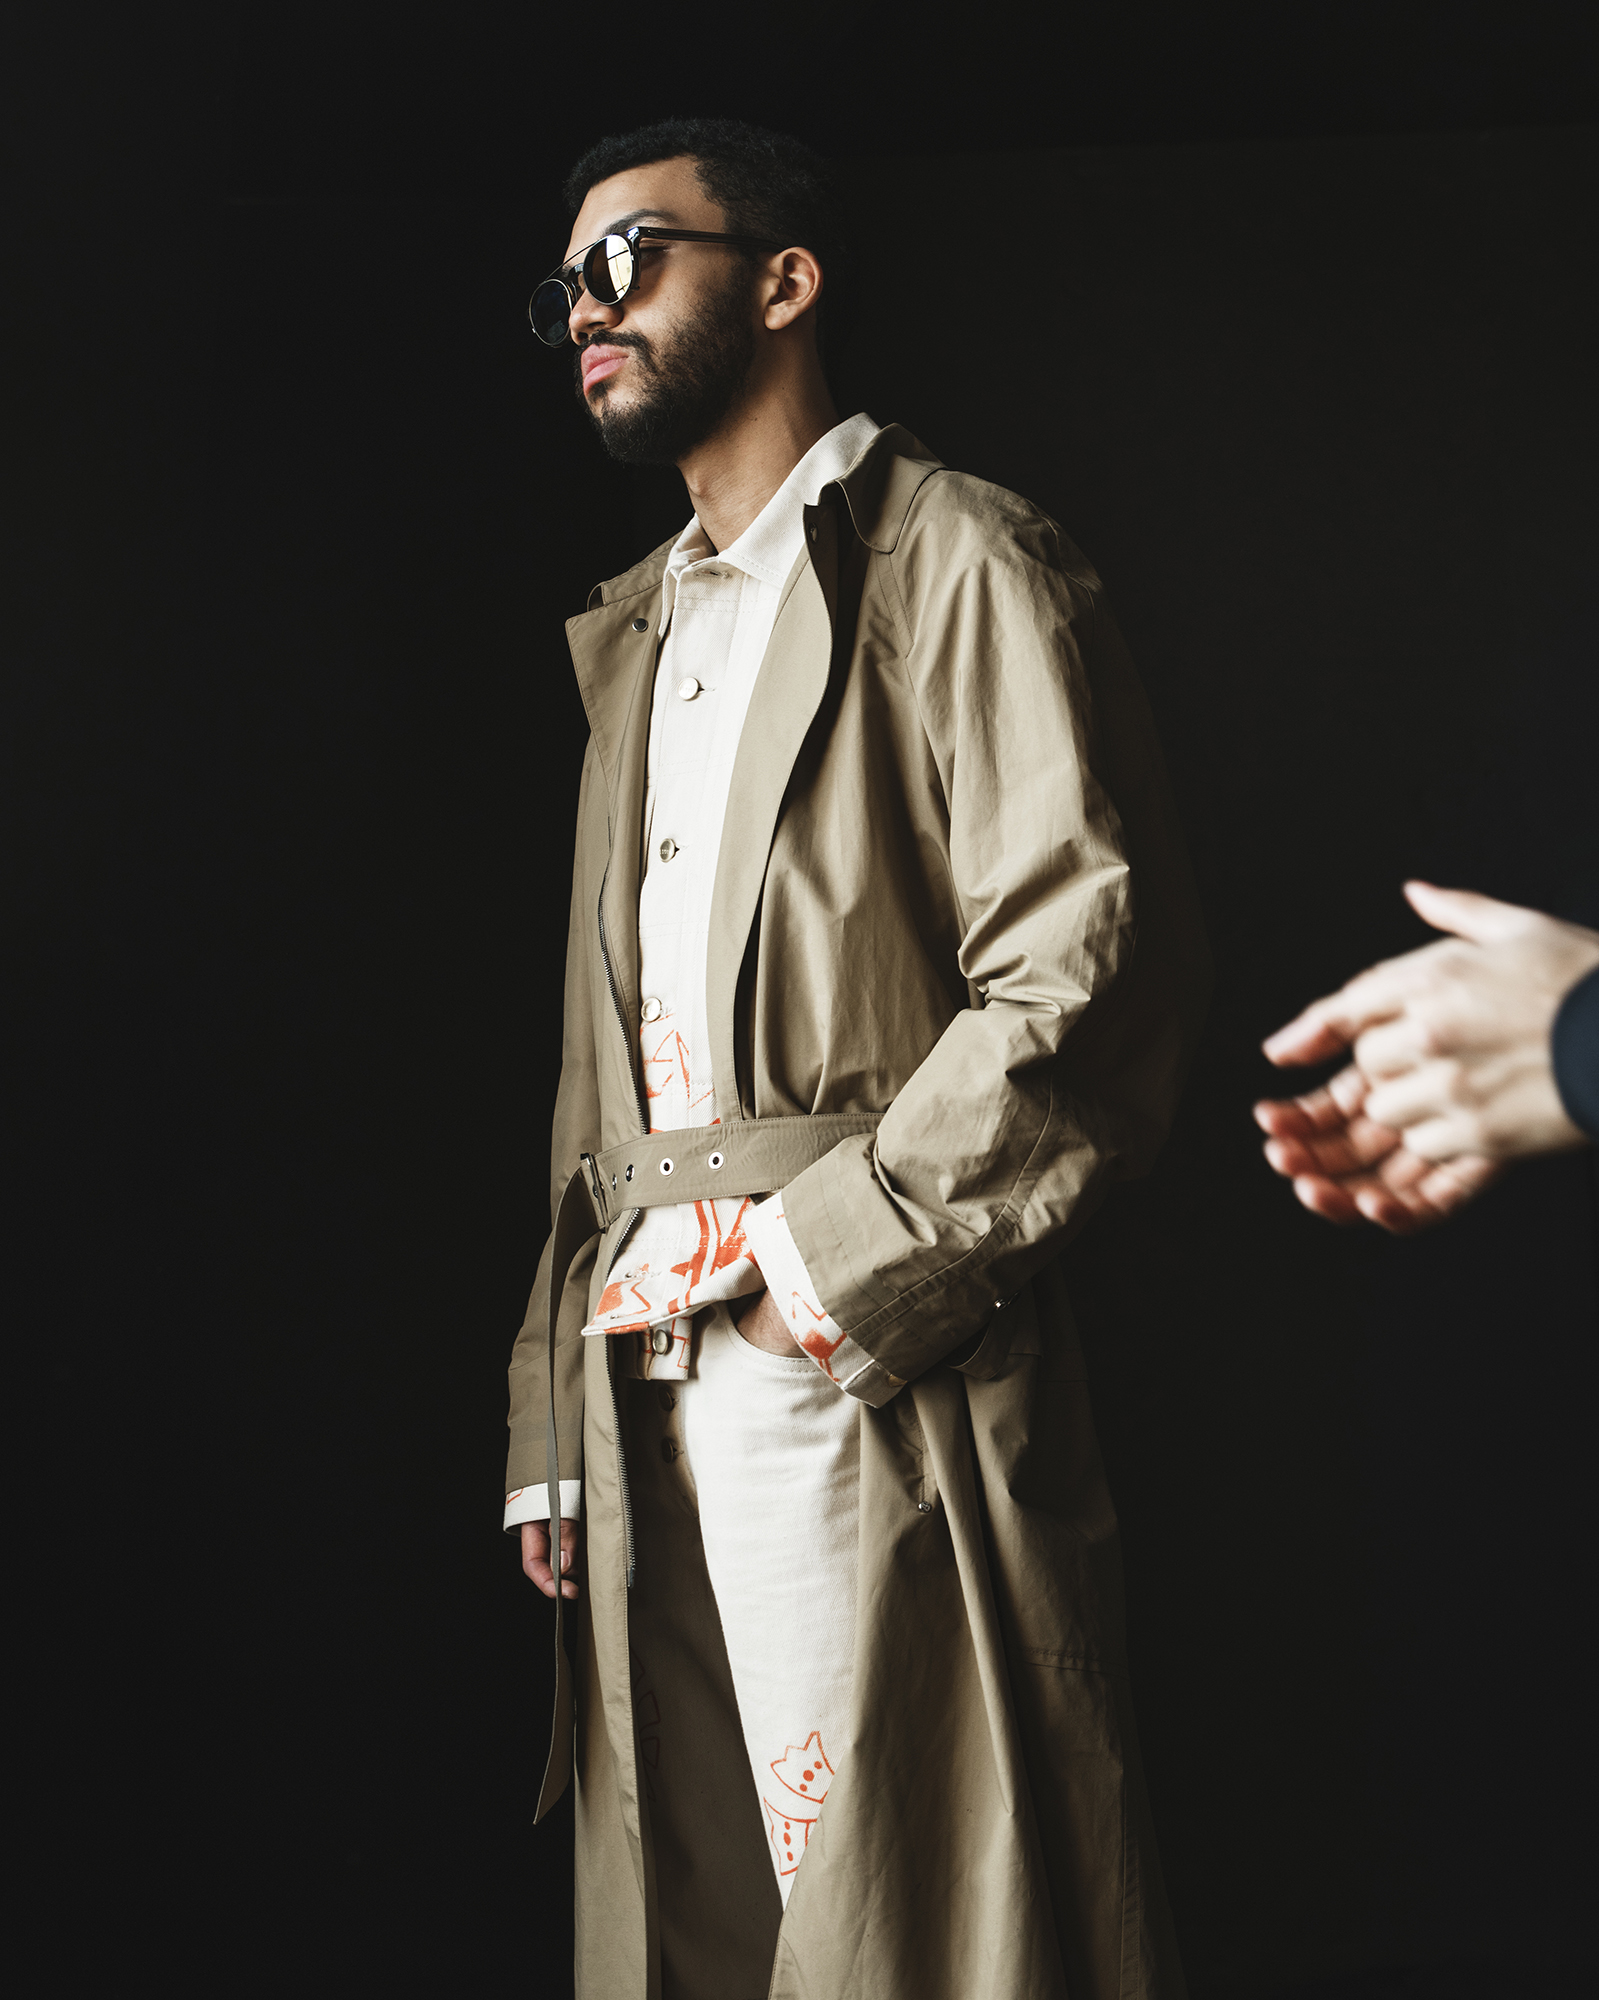 Coat by   SALVATORE FERRAGAMO  ; Jacket and pants by   LINDER  ; Sunglasses by   TVR OPT